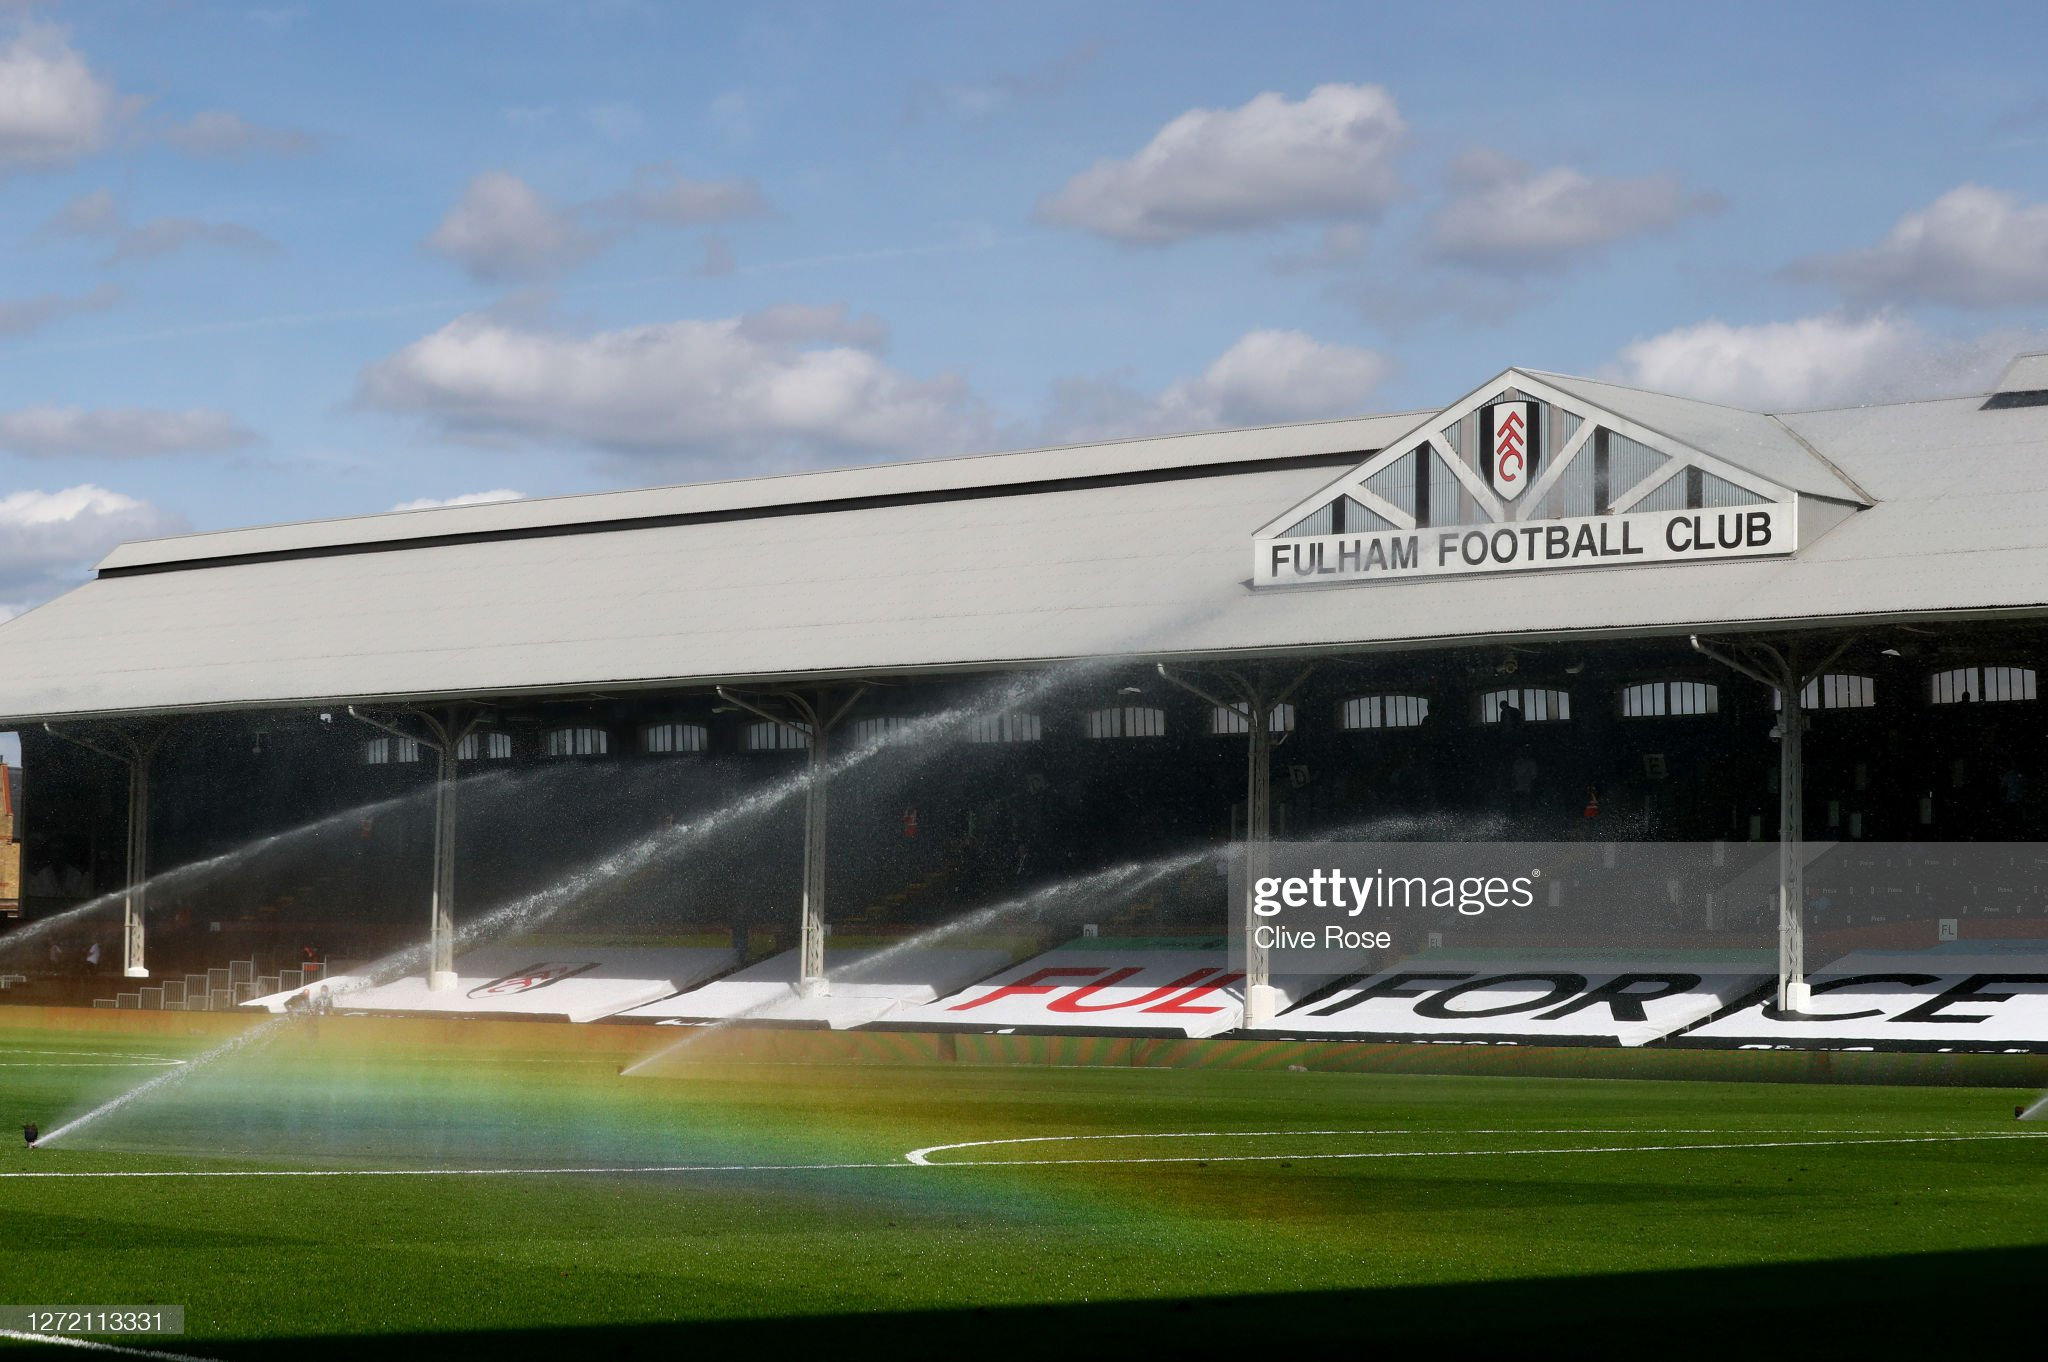 Fulham v Aston Villa Preview, prediction and odds